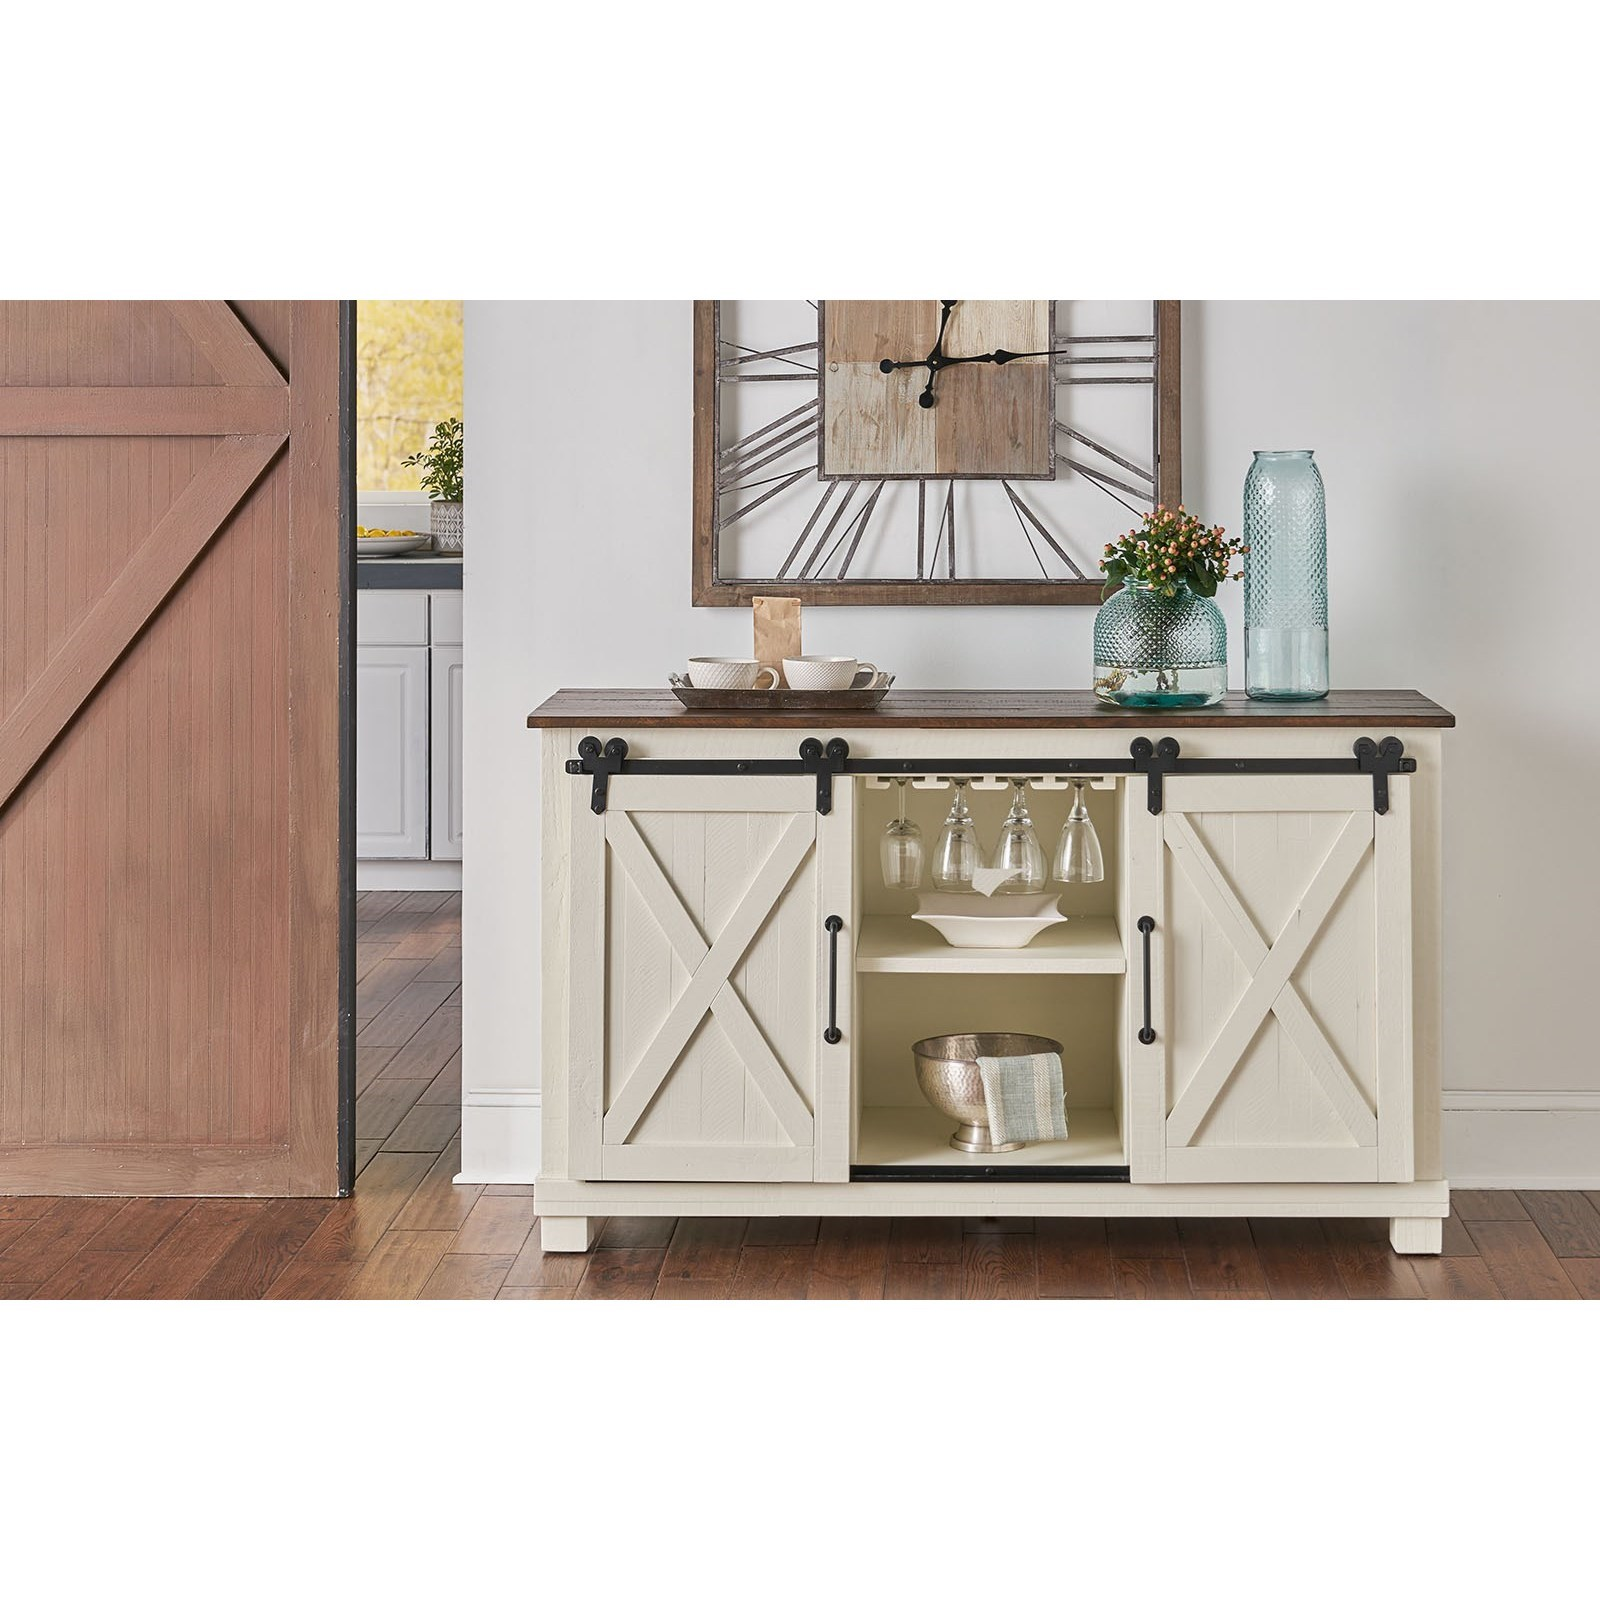 Sun Valley  Server by A-A at Walker's Furniture